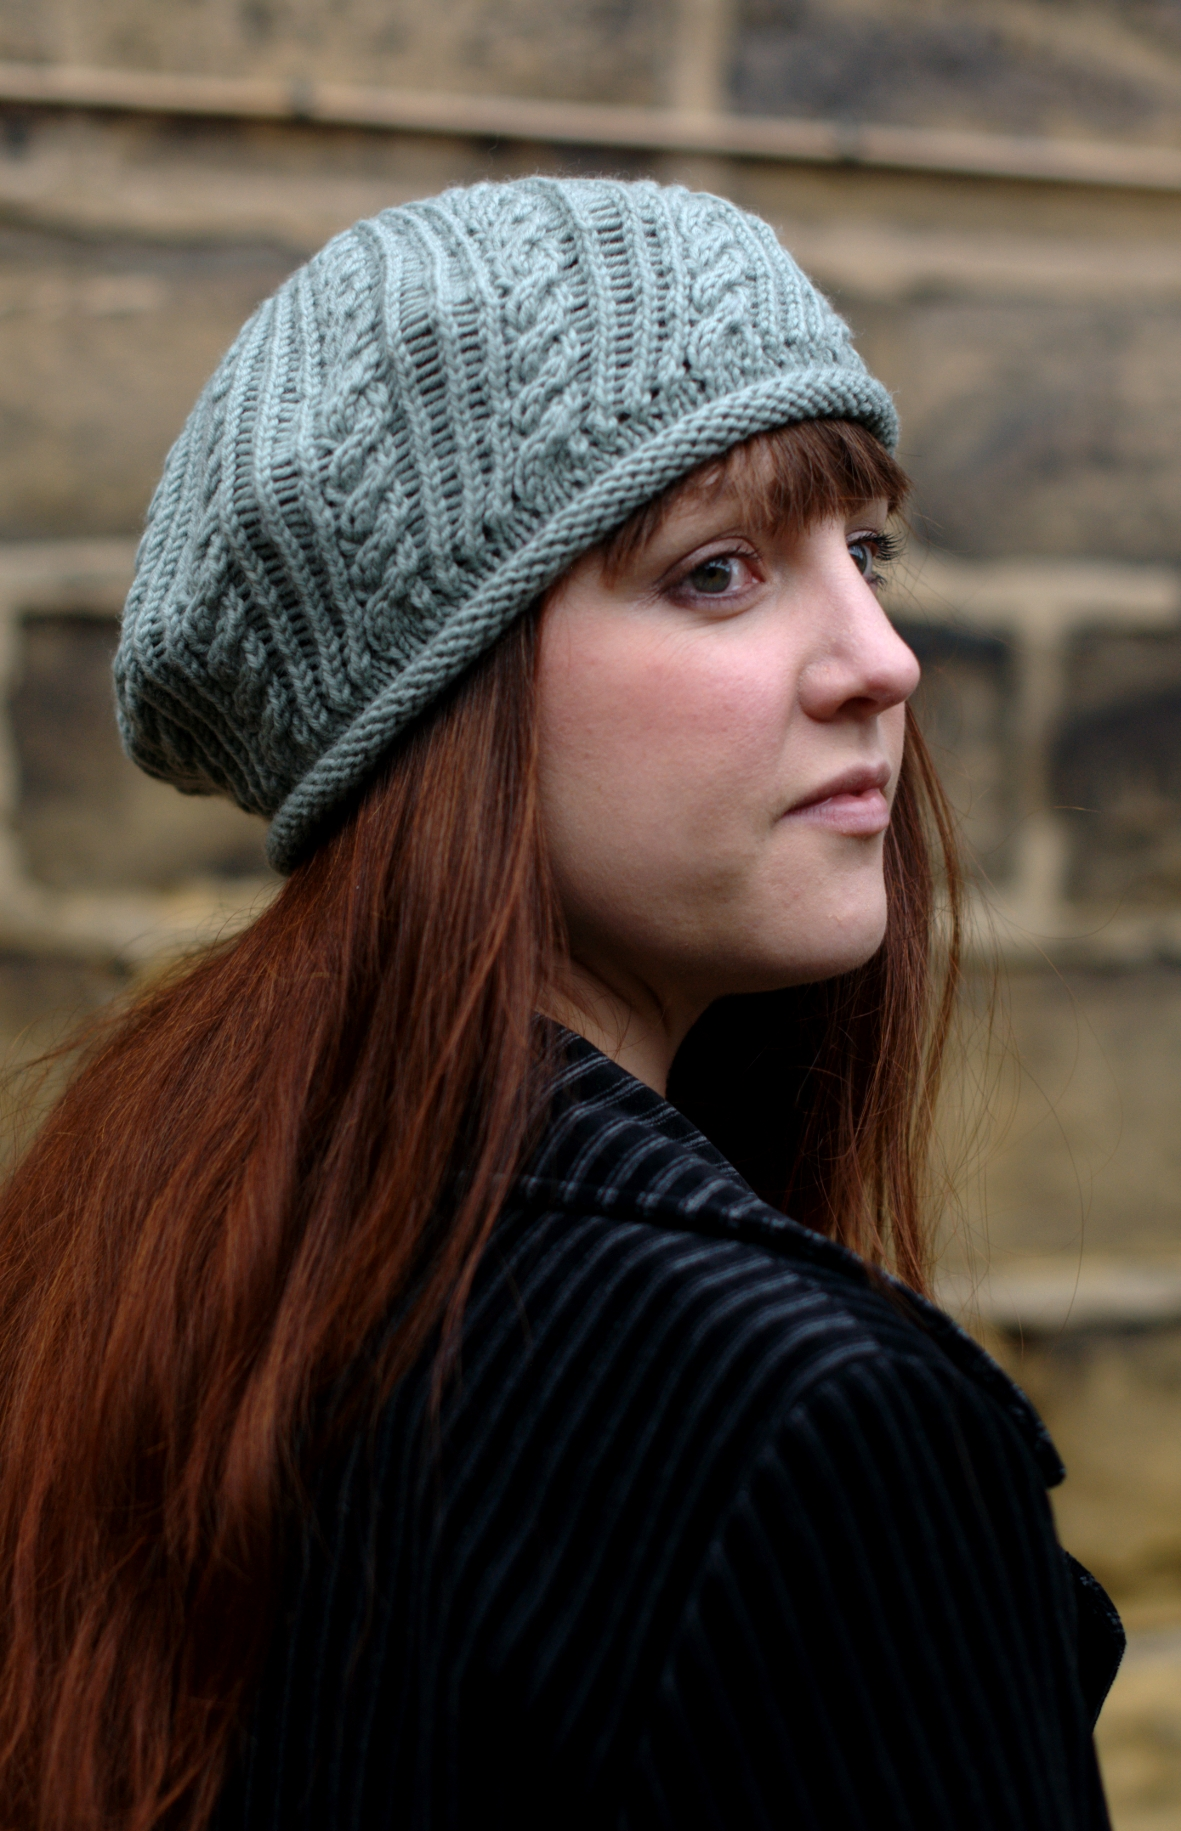 Wickery cable and lace beret hand knitting pattern